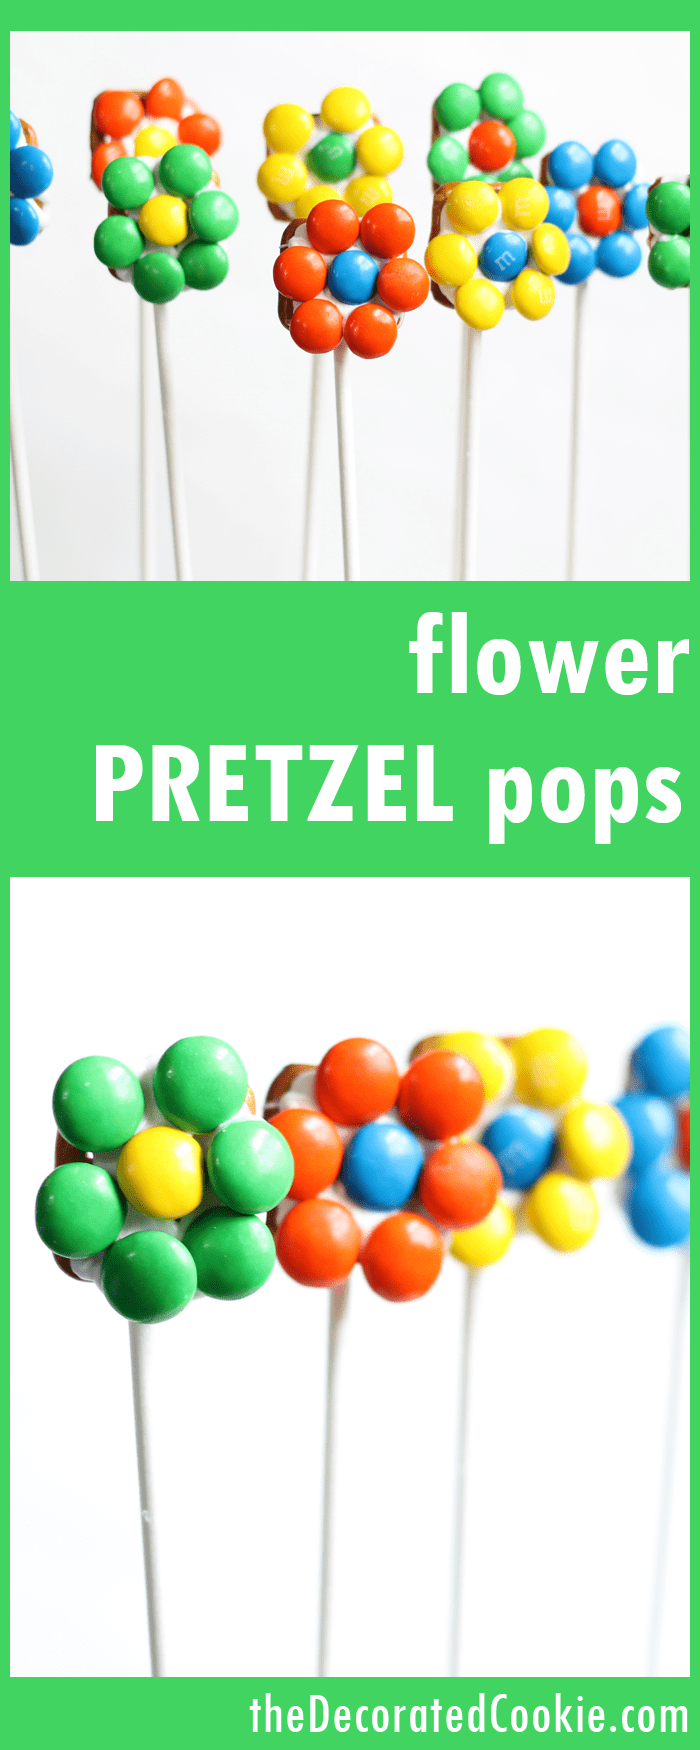 how to make flower pretzel pops -- with video how-tos